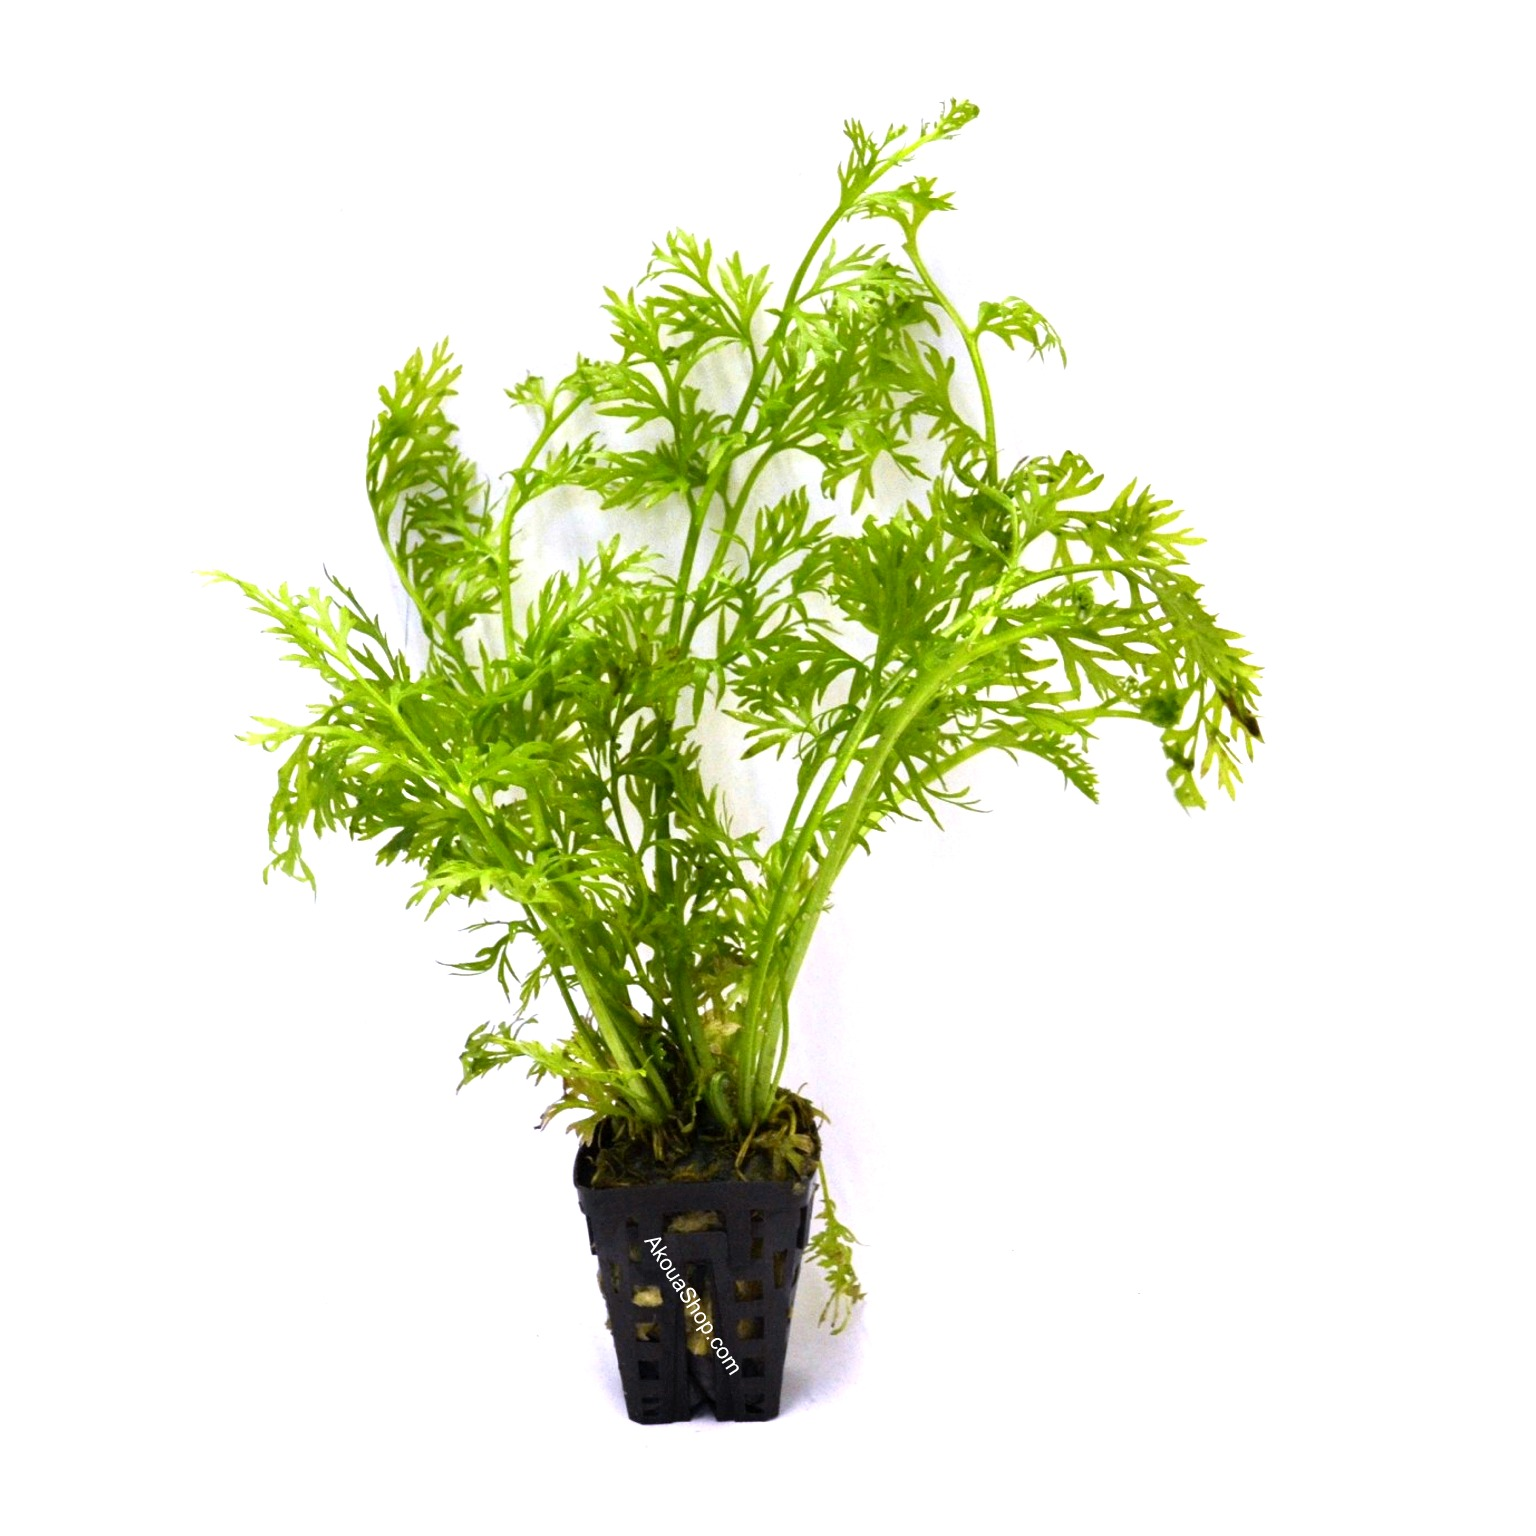 ceratopteris thalictroides plante d 39 aquarium en pot de. Black Bedroom Furniture Sets. Home Design Ideas